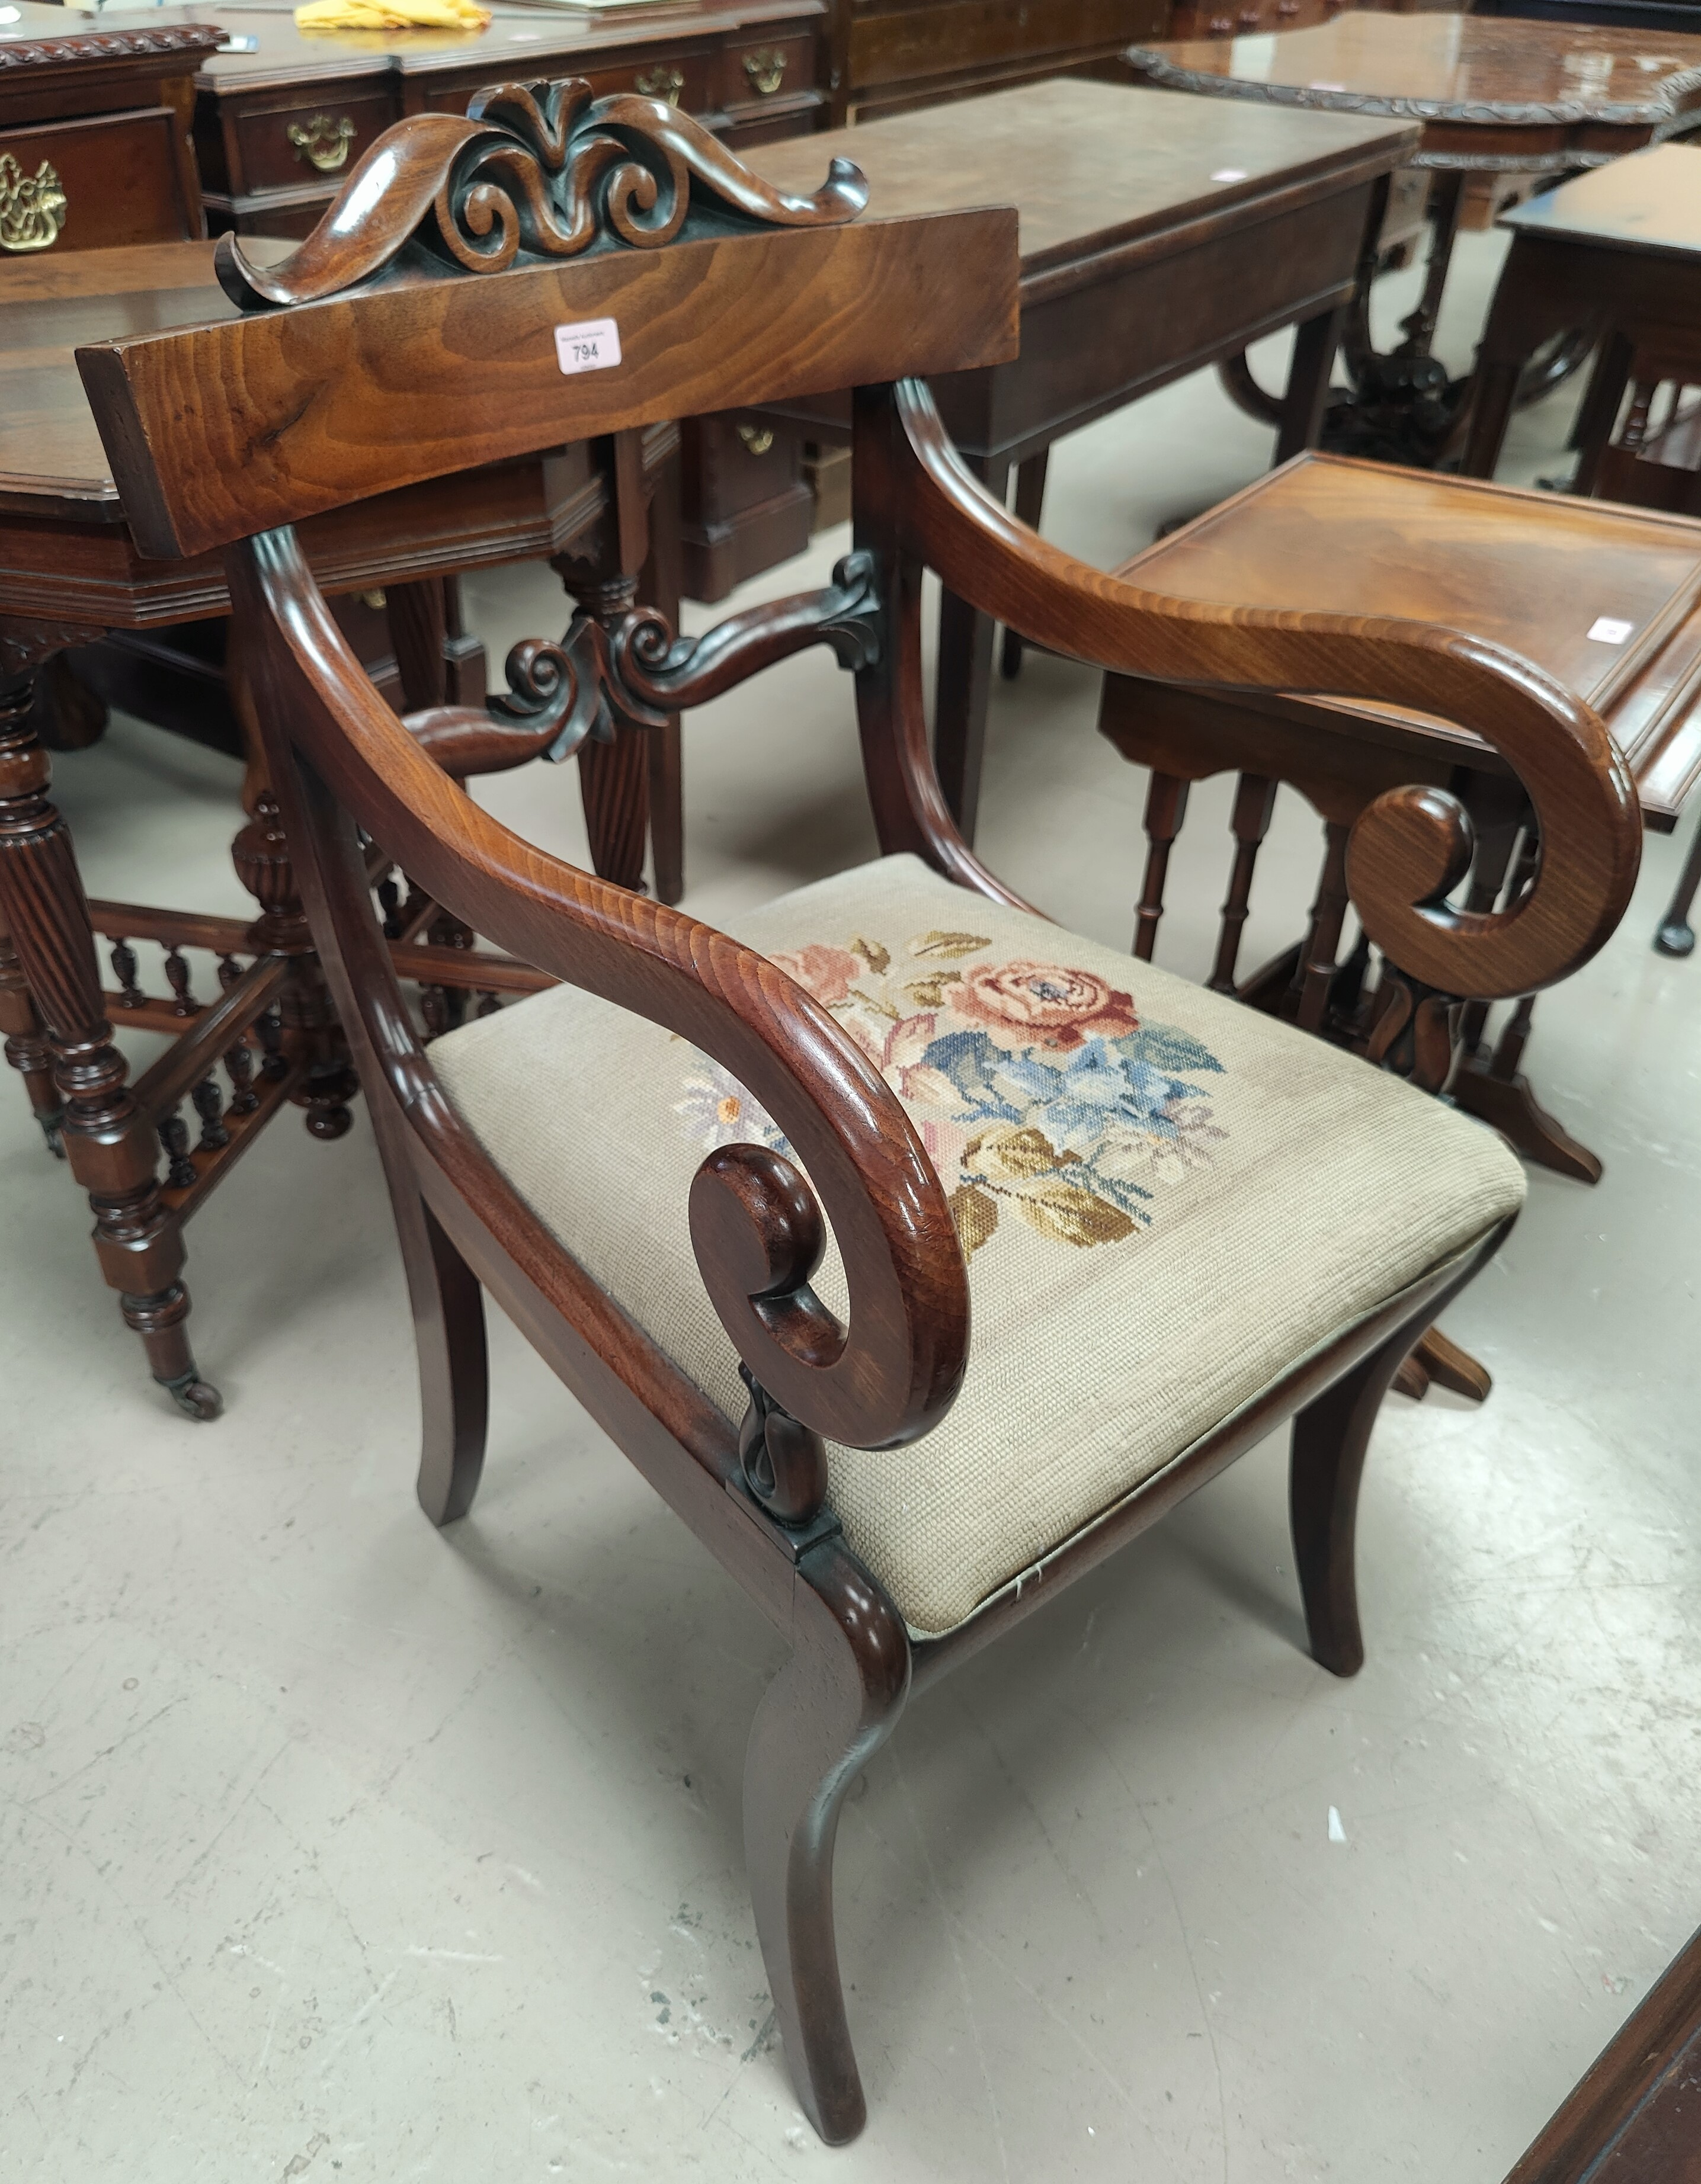 An Edwardian pair of inlaid mahogany armchairs with embossed green seats; a William IV mahogany